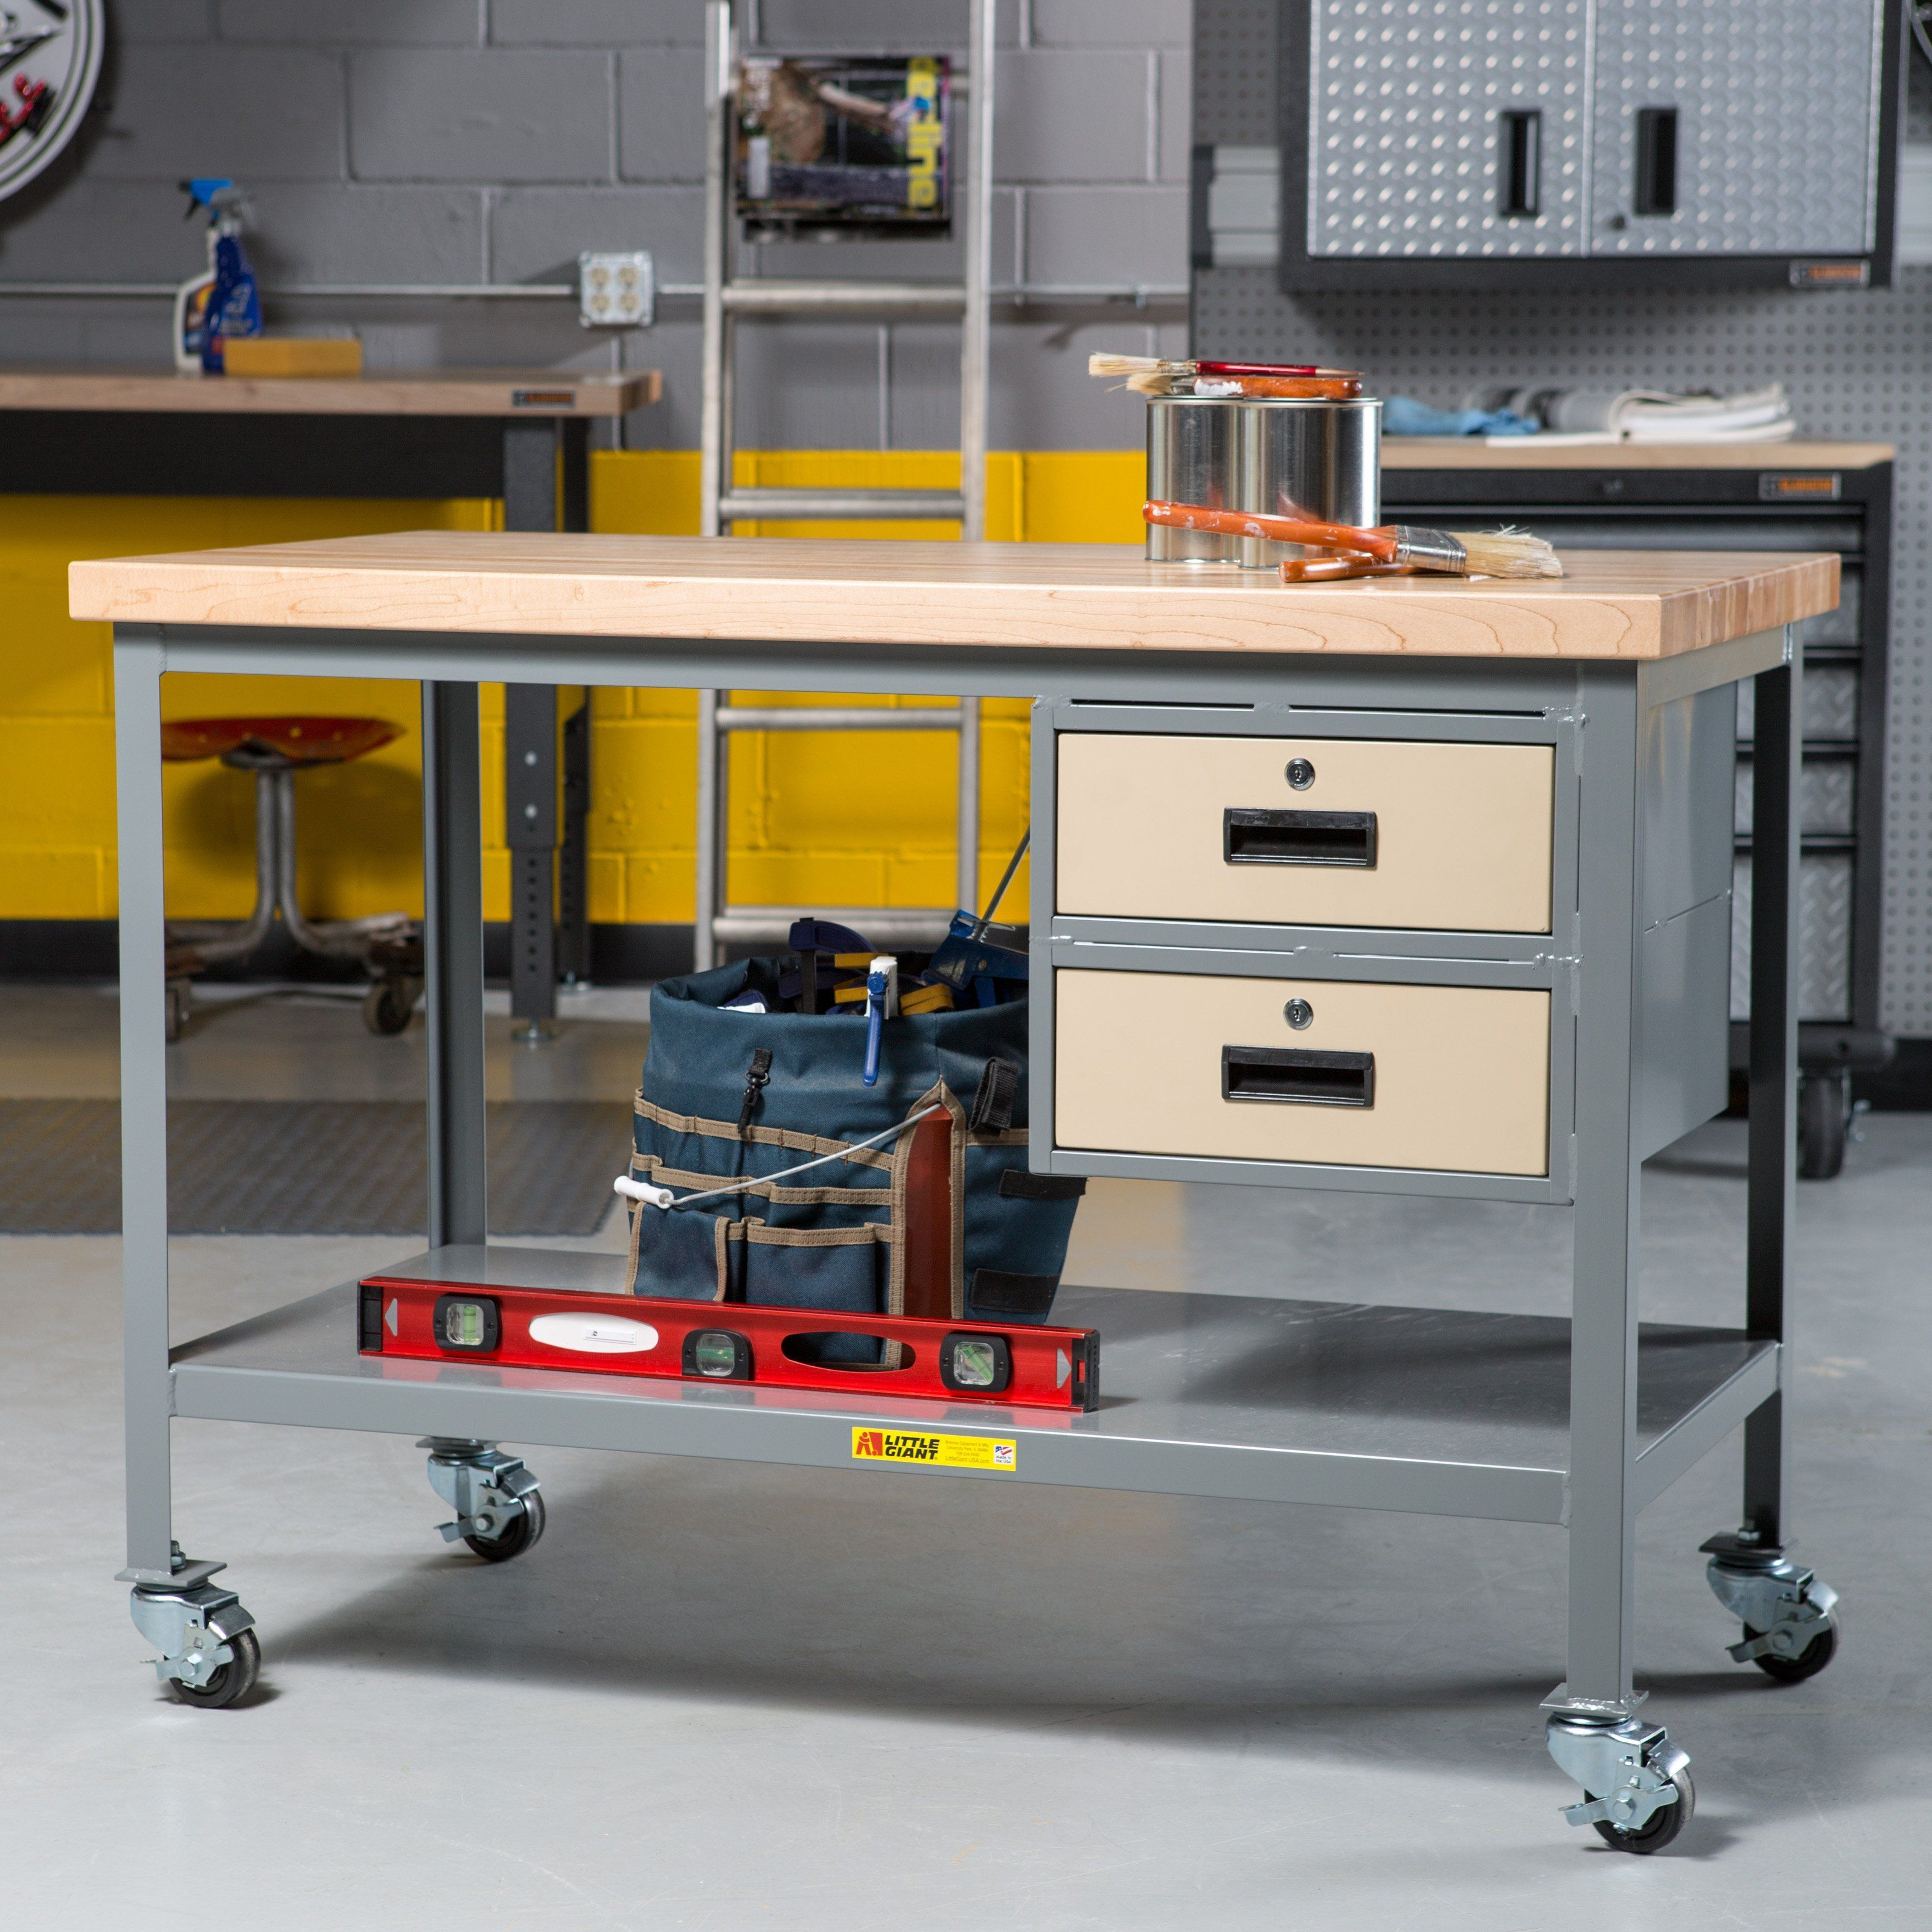 tool frame table workshop steel with boar bench storage dp peg w and com work drawers workbench drawer amazon